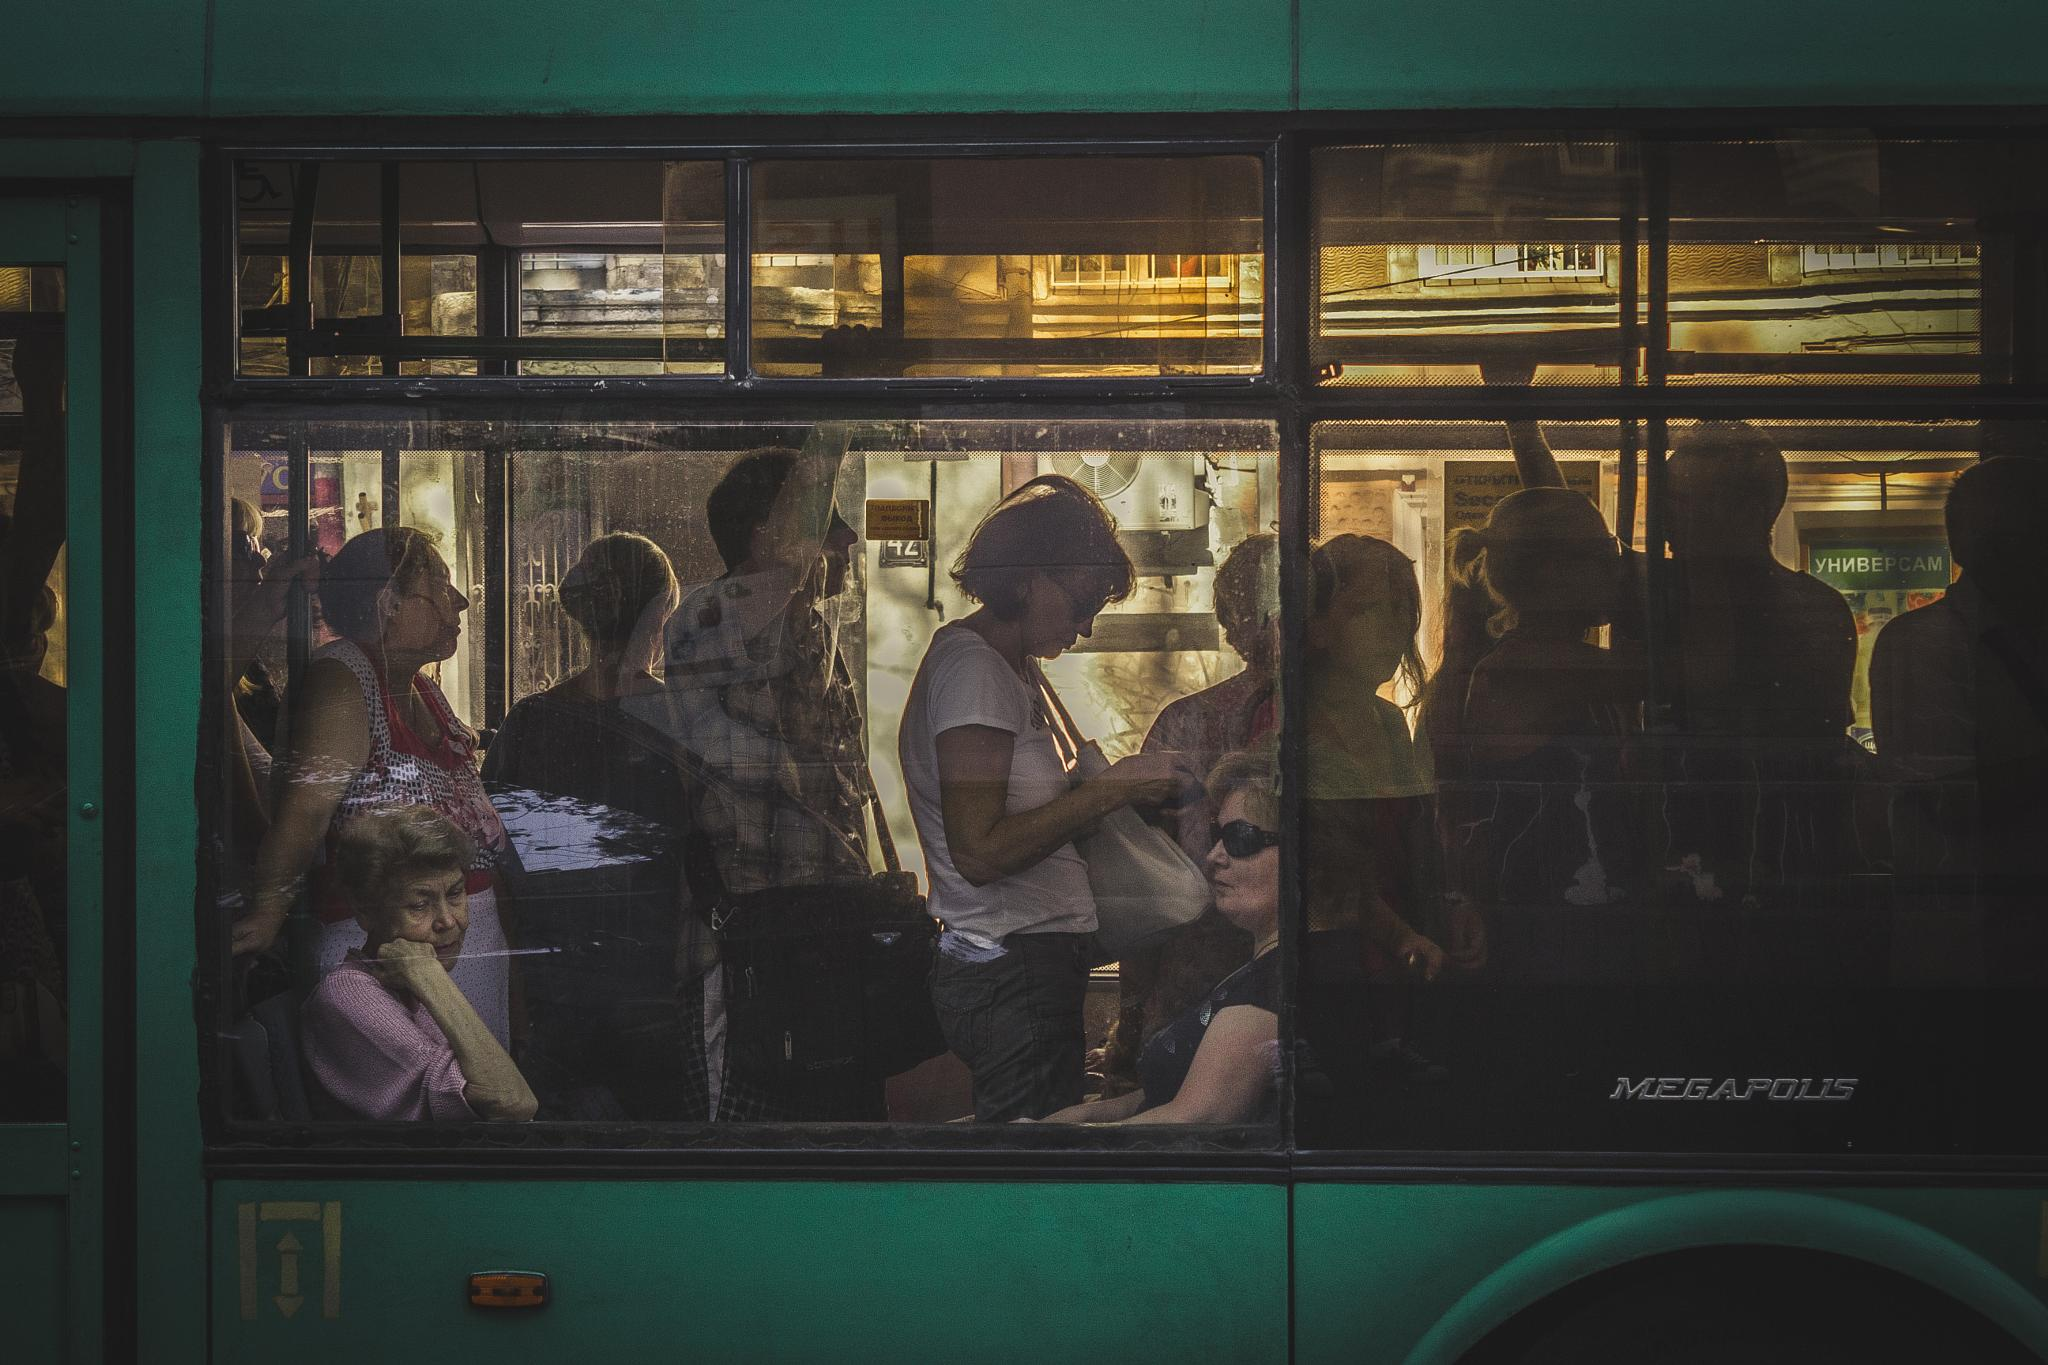 Bus with people in Odessa by Andriy Medyna